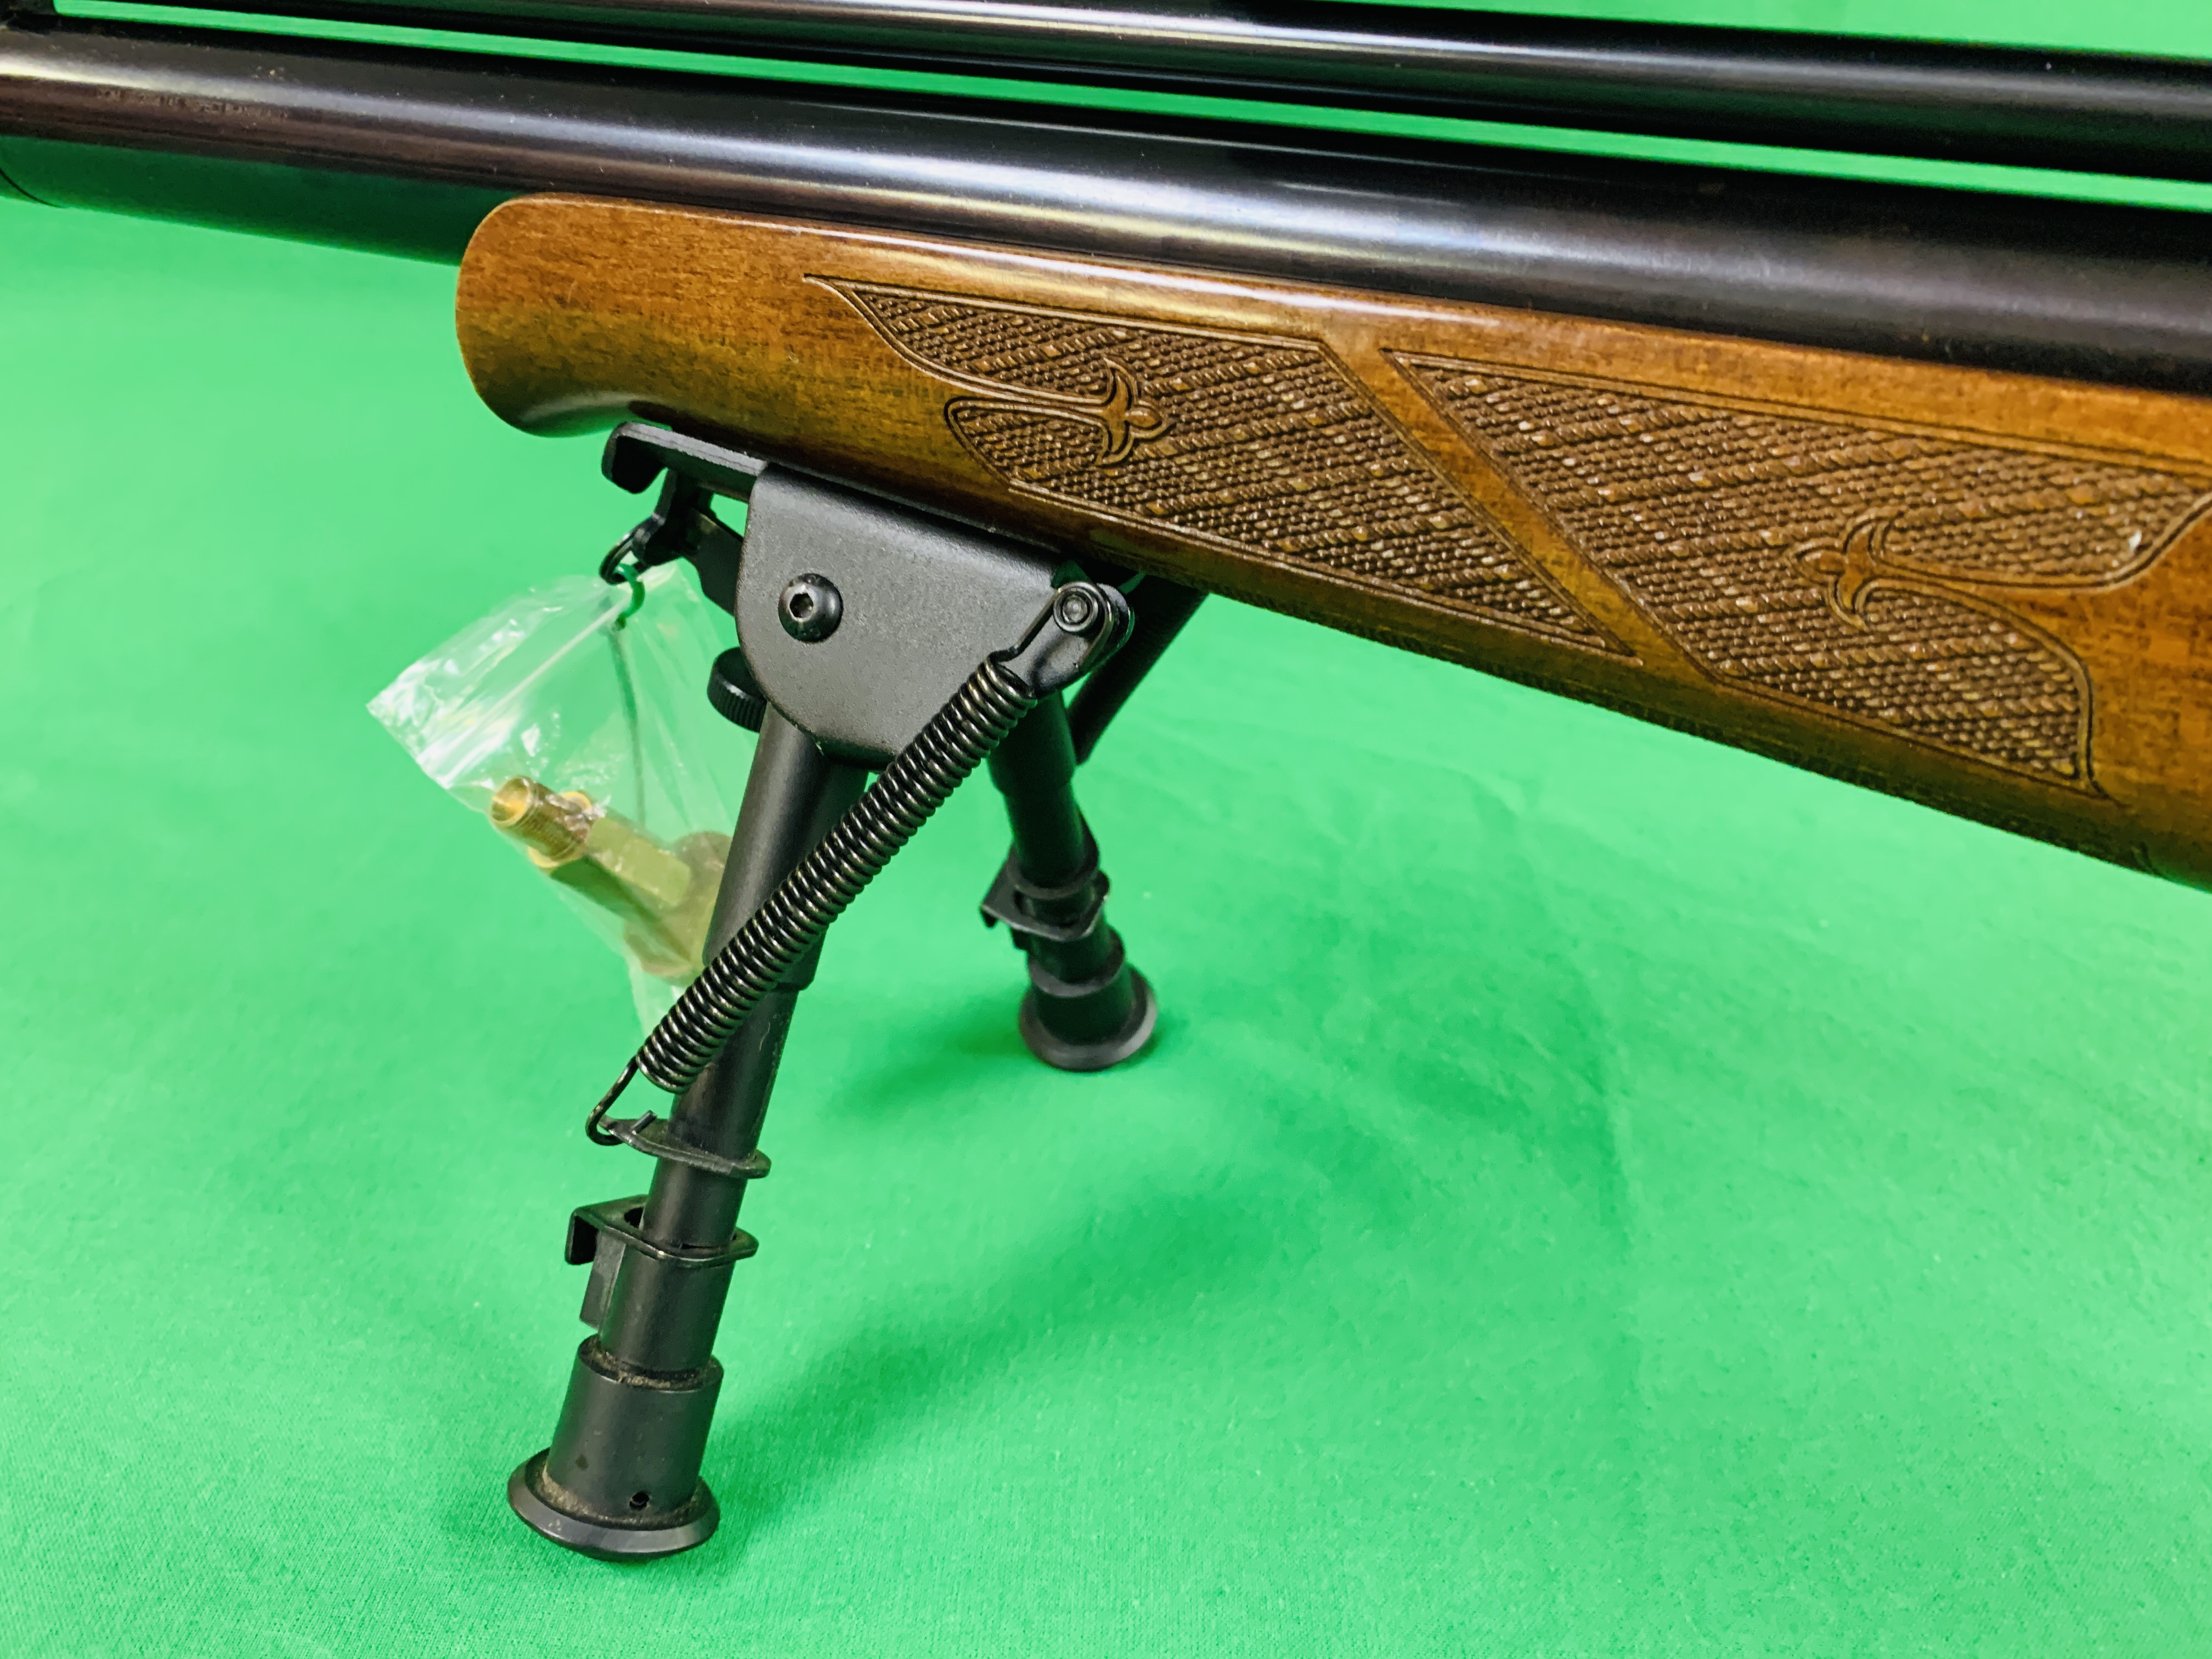 AIR ARMS S400 CLASSIC .177 BOLT ACTION PCP AIR RIFLE FITTED WITH BONUS 6. - Image 8 of 17